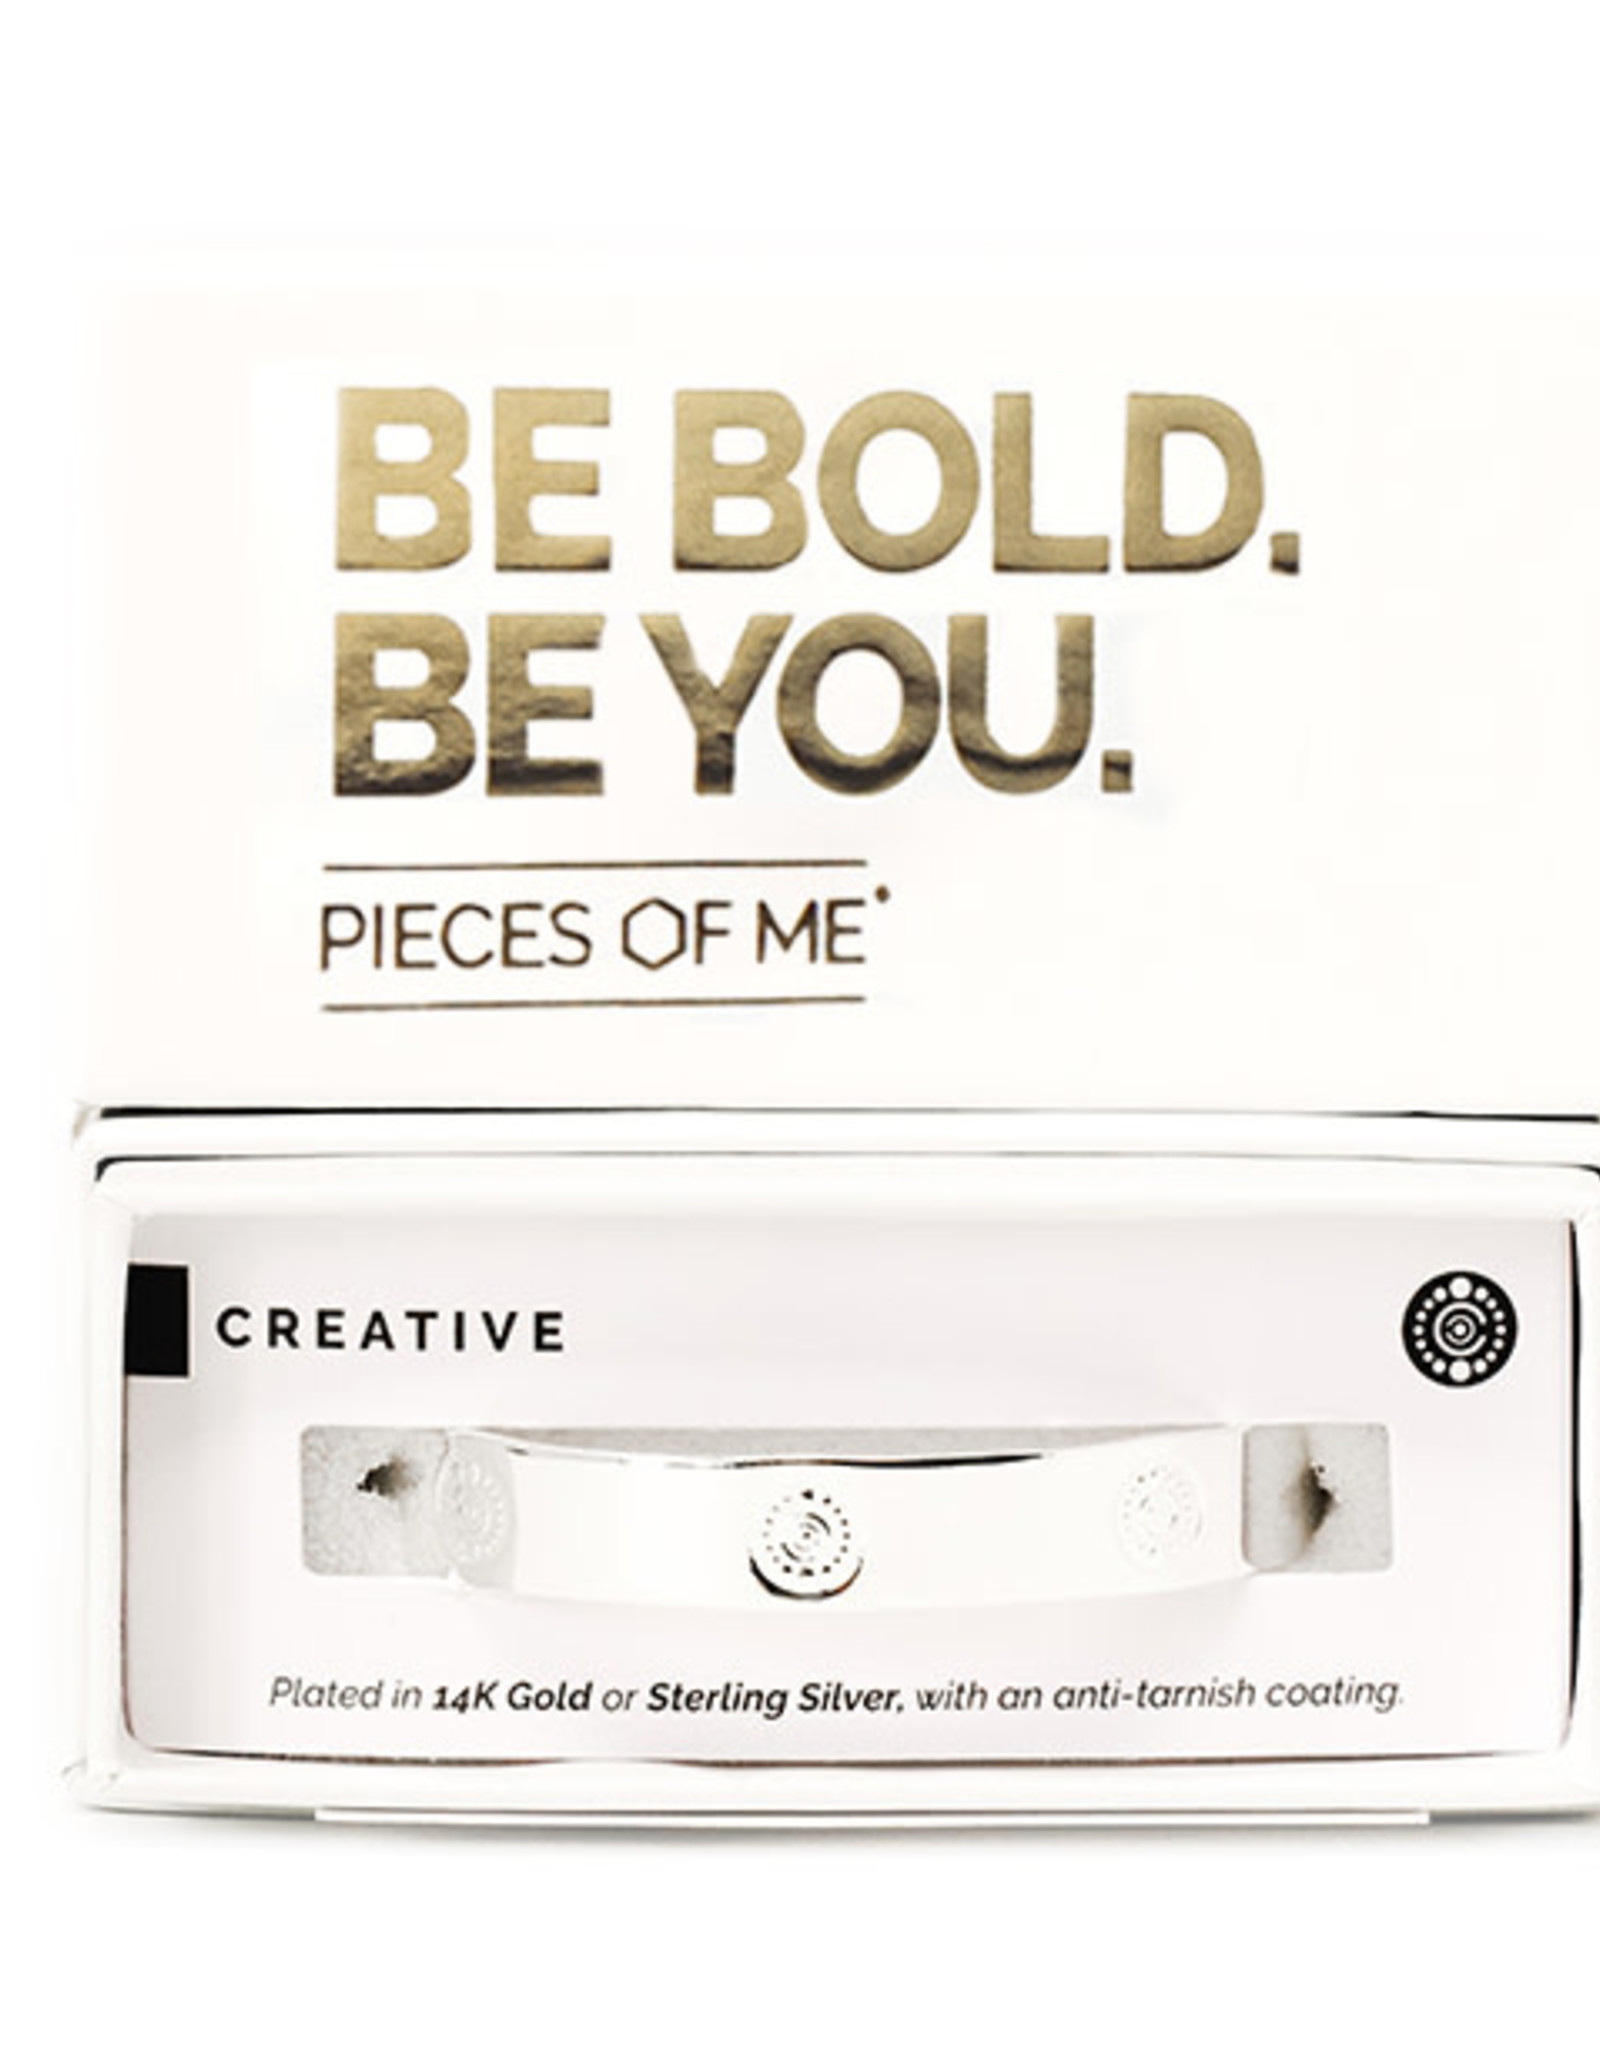 Pieces of Me Bracelet Creative Silver